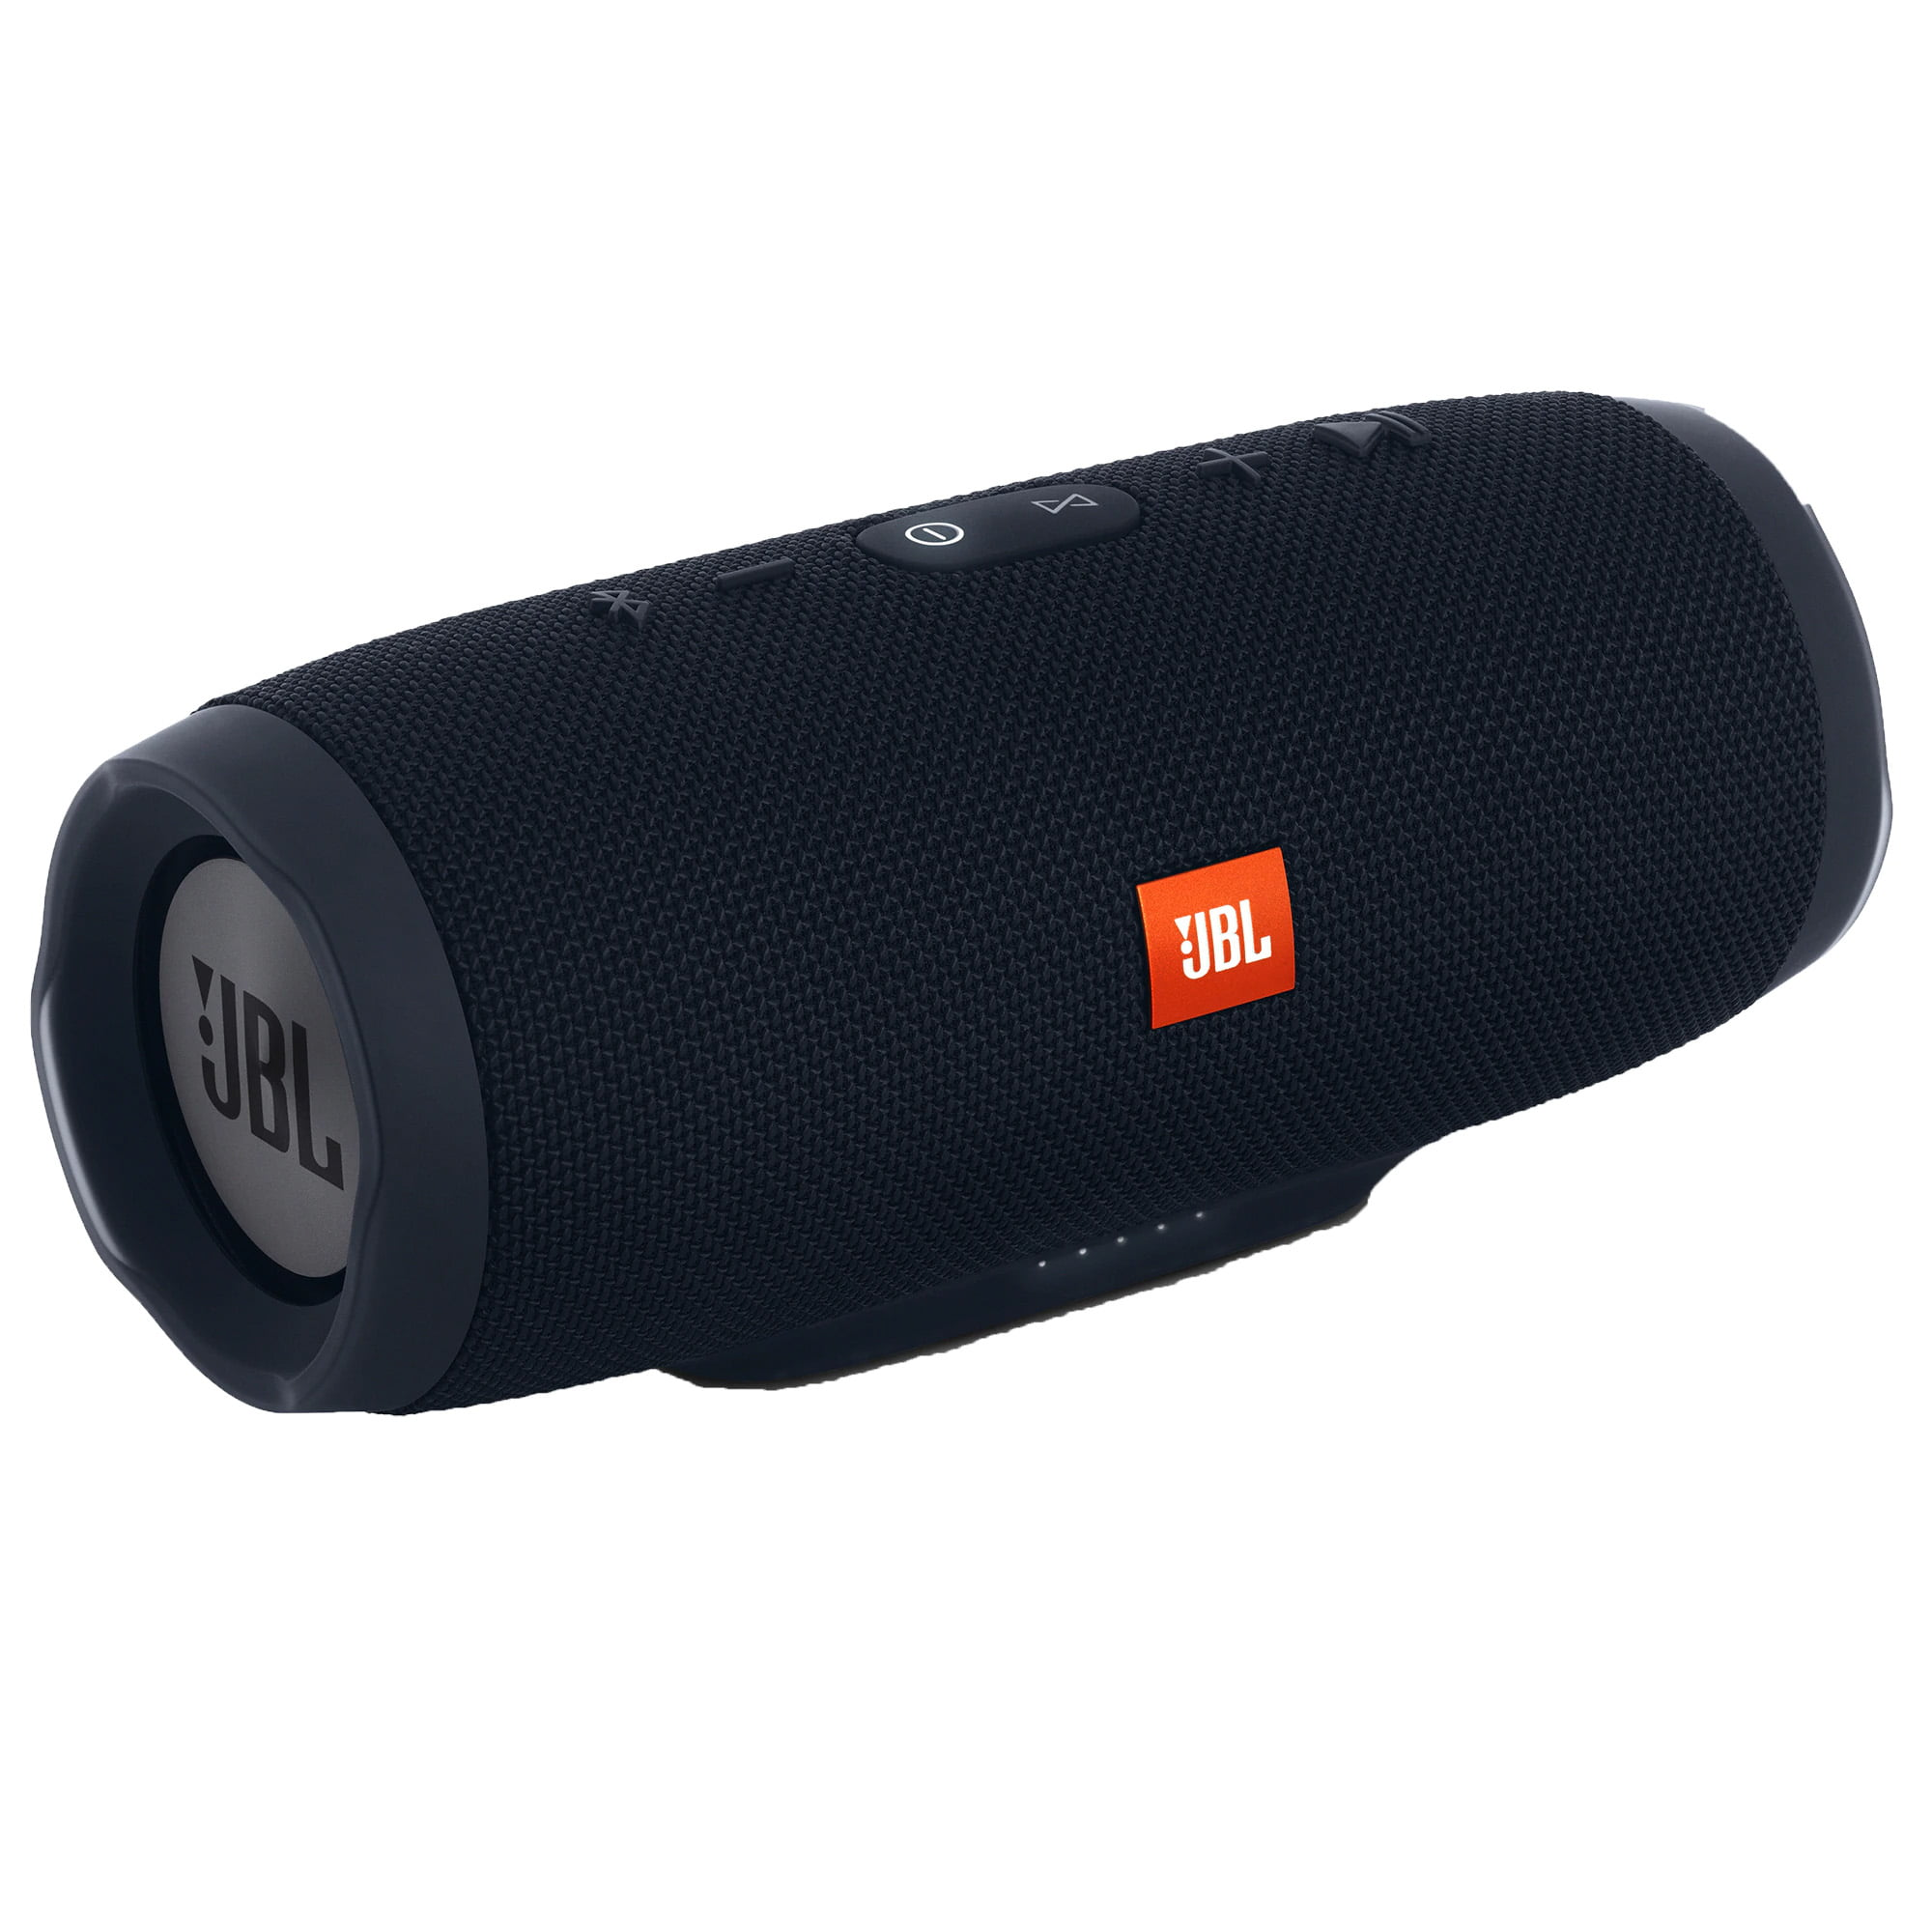 Boxa portabila JBL Charge 3, Bluetooth, Powerbank 6000mAh, IPX7 Waterproof, Black